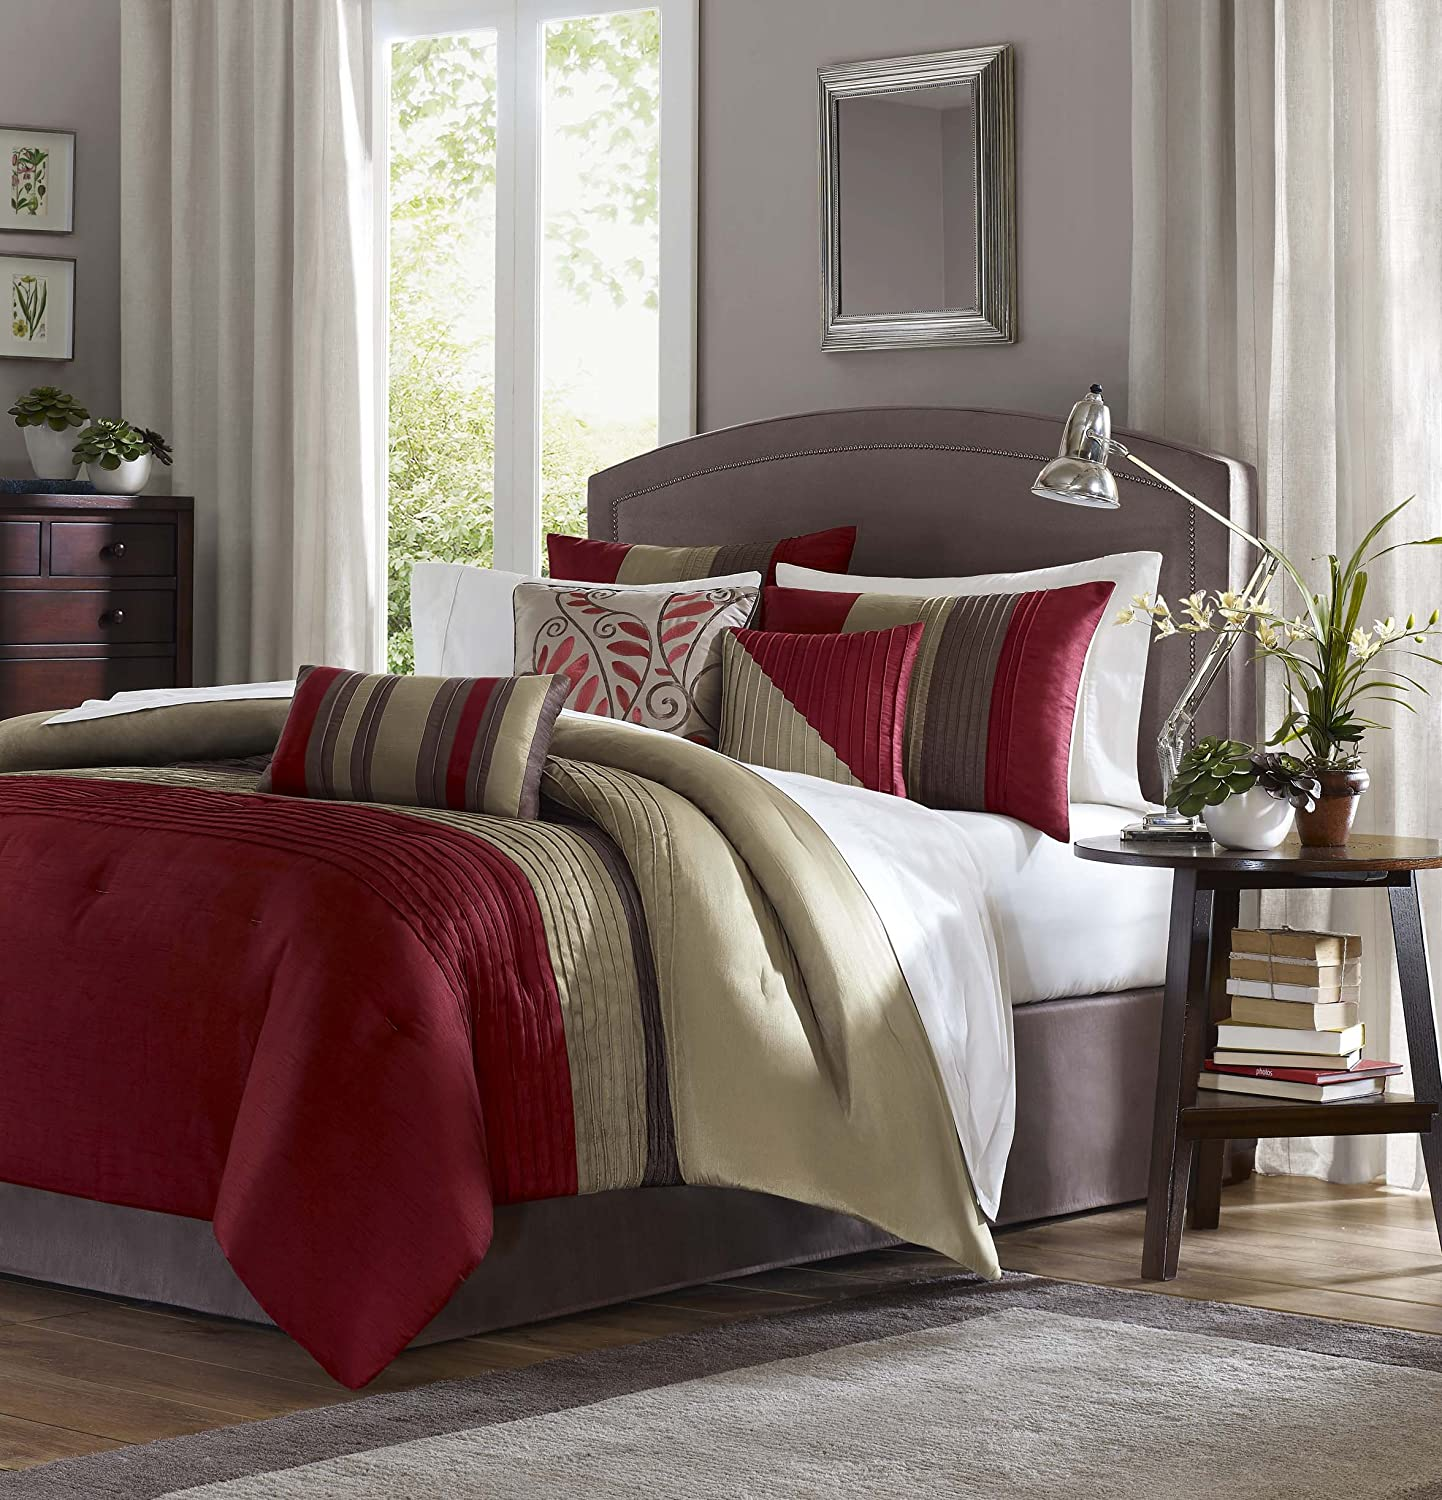 Madison Park Tradewinds 7 Piece Comforter Set, Queen, Red